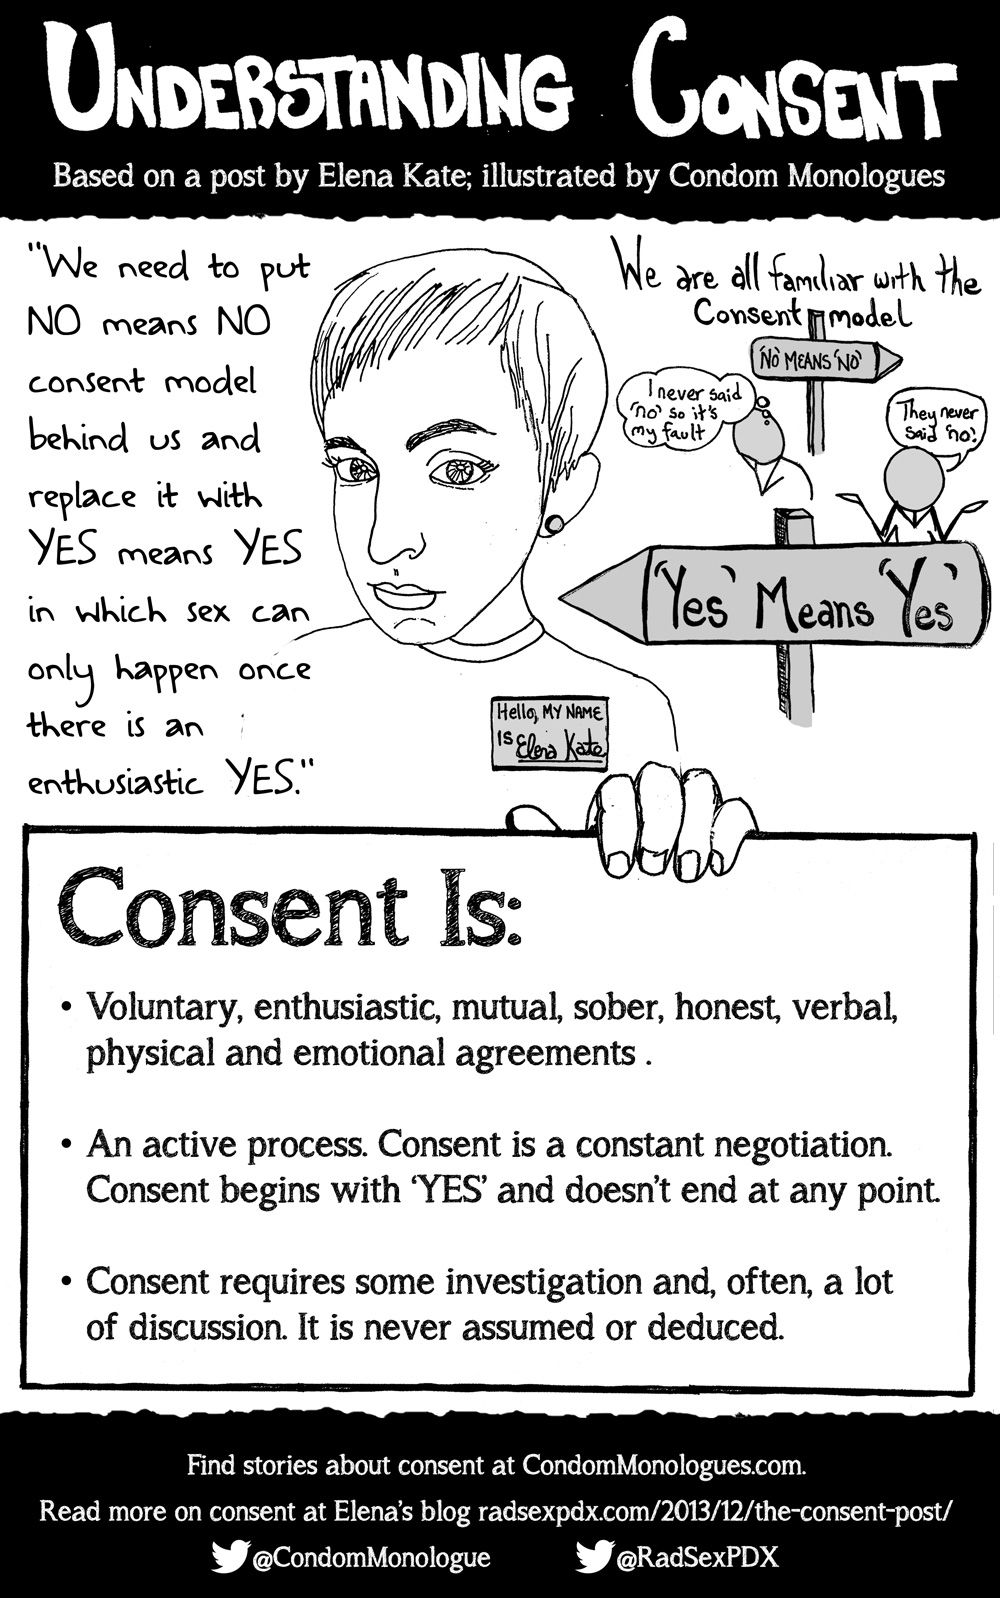 "Consent is not a lack of ""No"". Poster inspired by @Elena Kate. Read more: http://condommonologues.com/understanding-consent/"